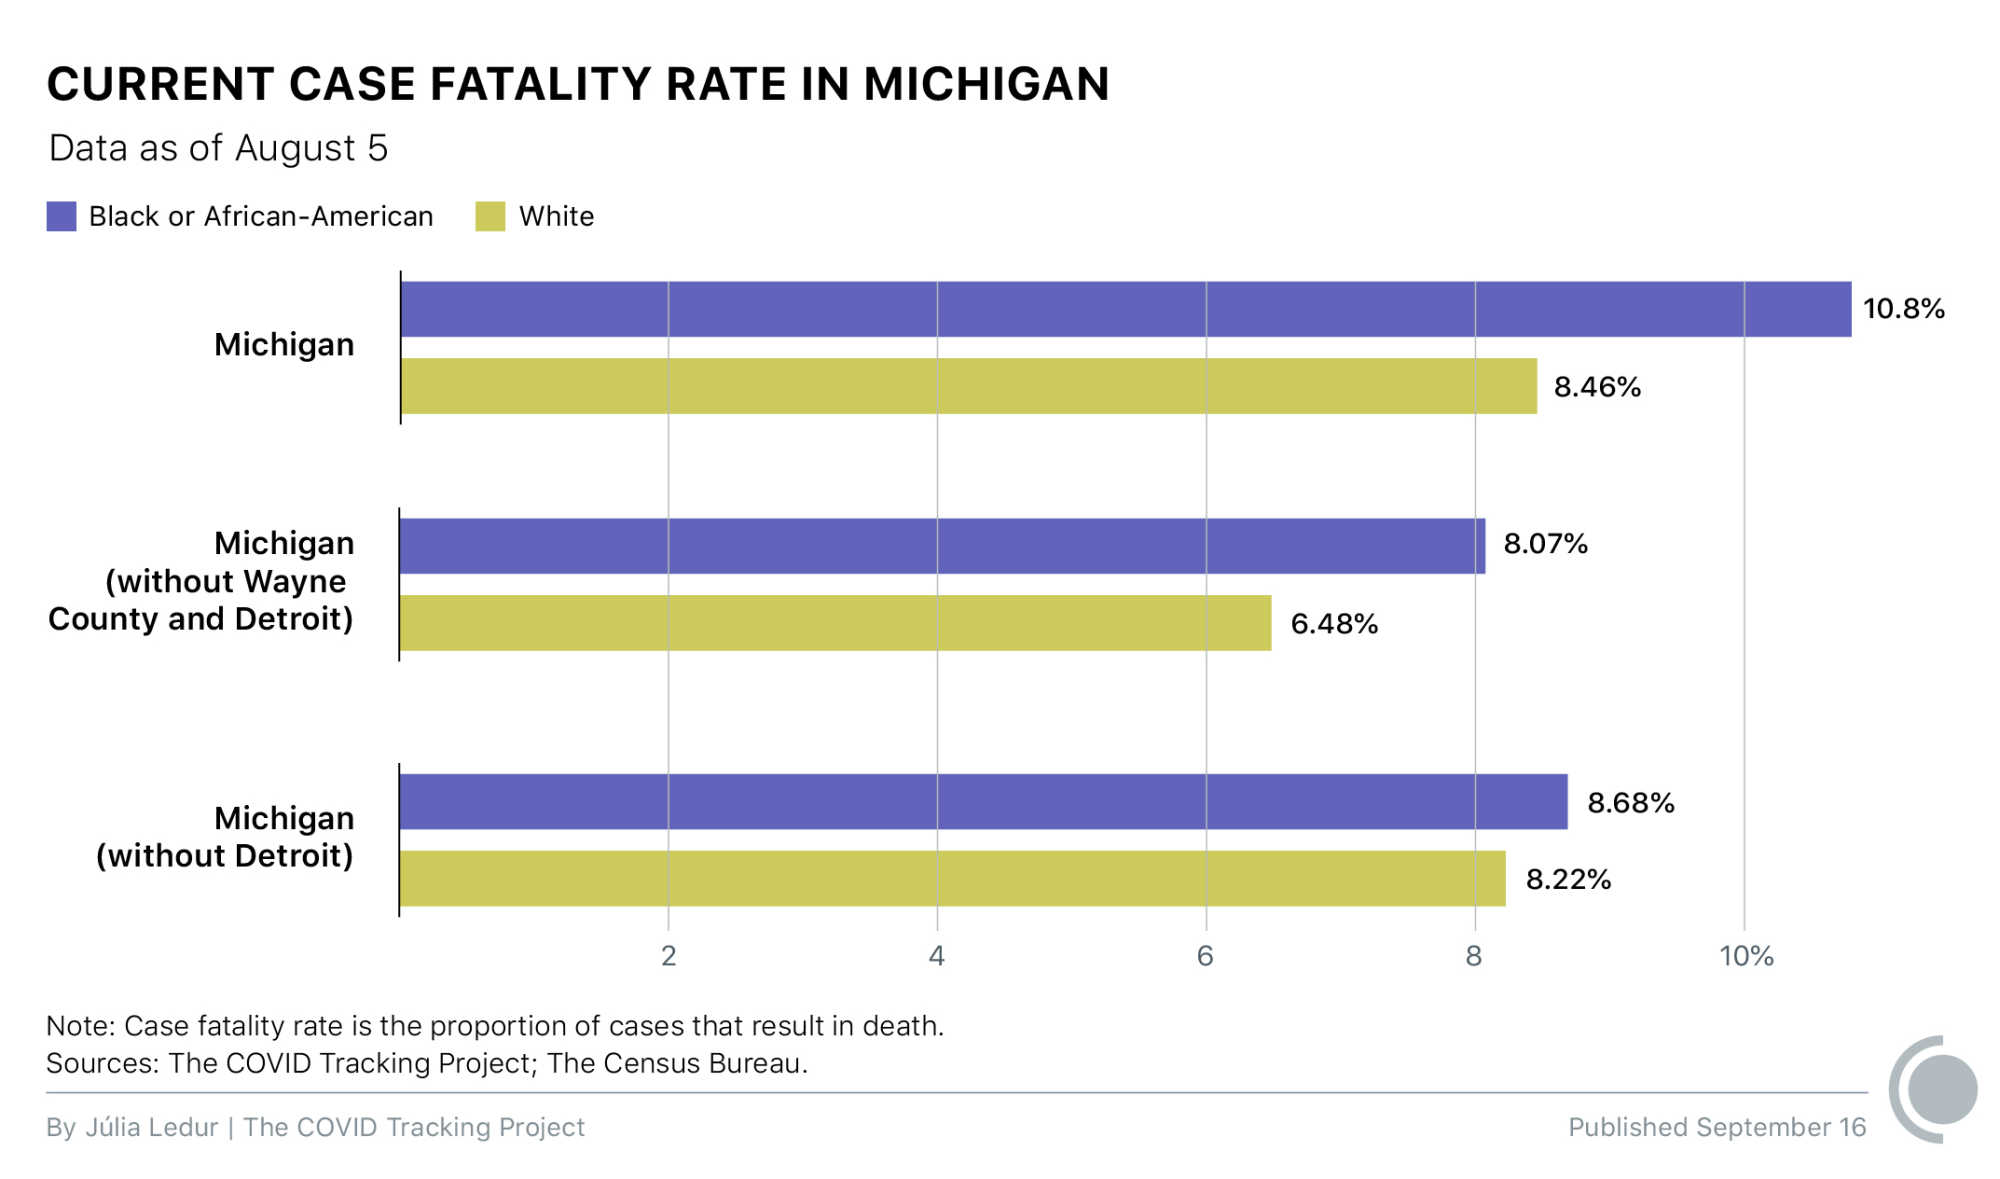 Current case fatality rate in Michigan